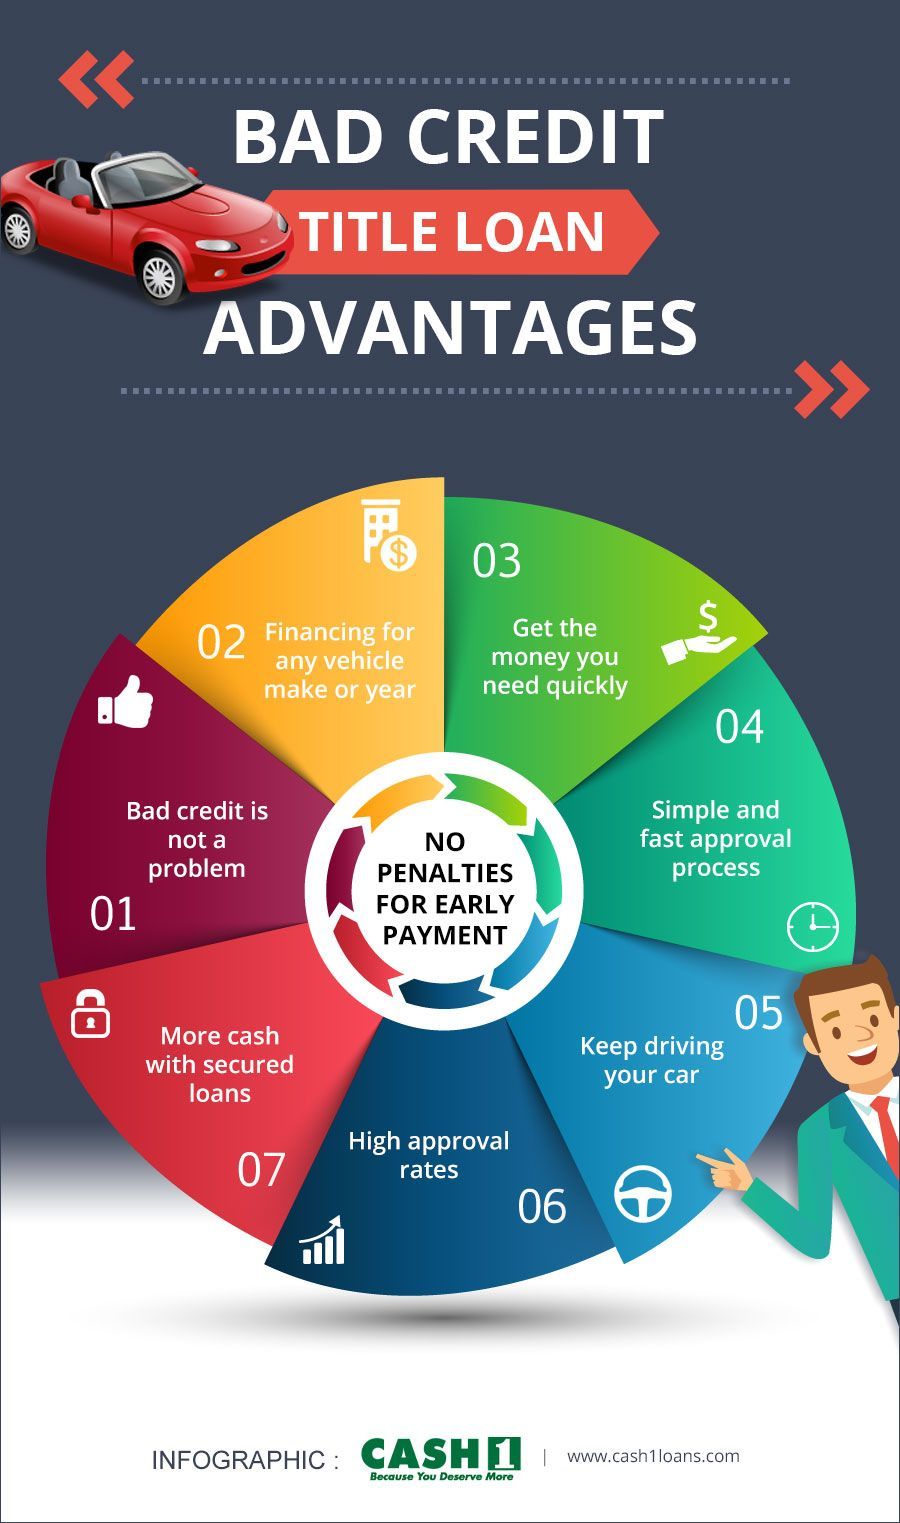 Collateral Loans Bad Credit Advantages Infographic There Are Advantages To Collateral Loans Especially When Your Cr Collateral Loans Bad Credit Payday Loans